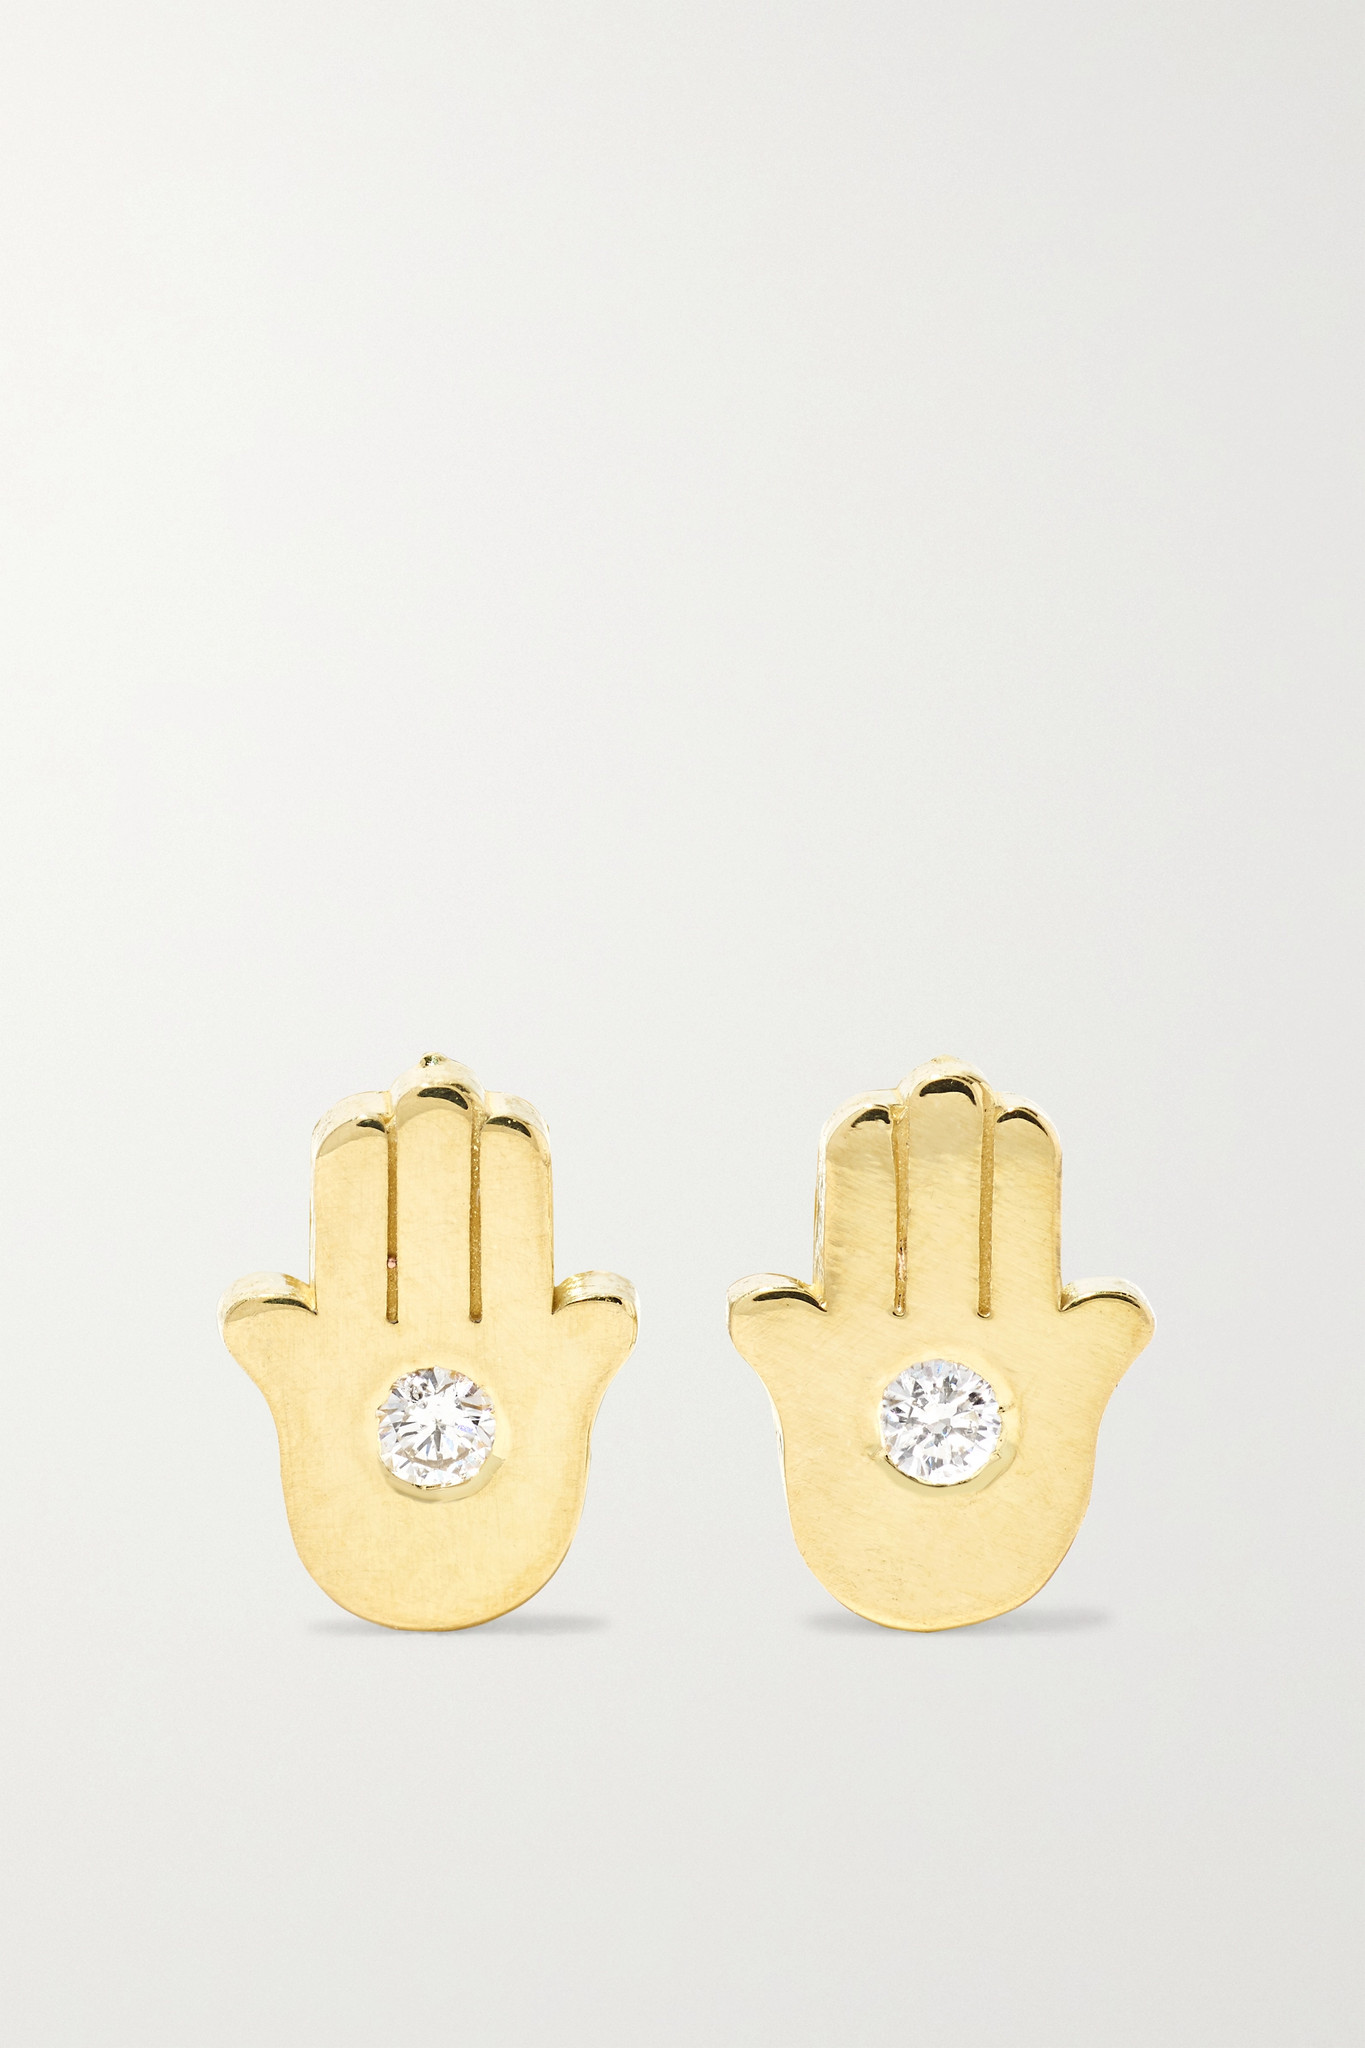 JENNIFER MEYER - Mini Hamsa 18k 黄金钻石耳钉 - 金色 - one size